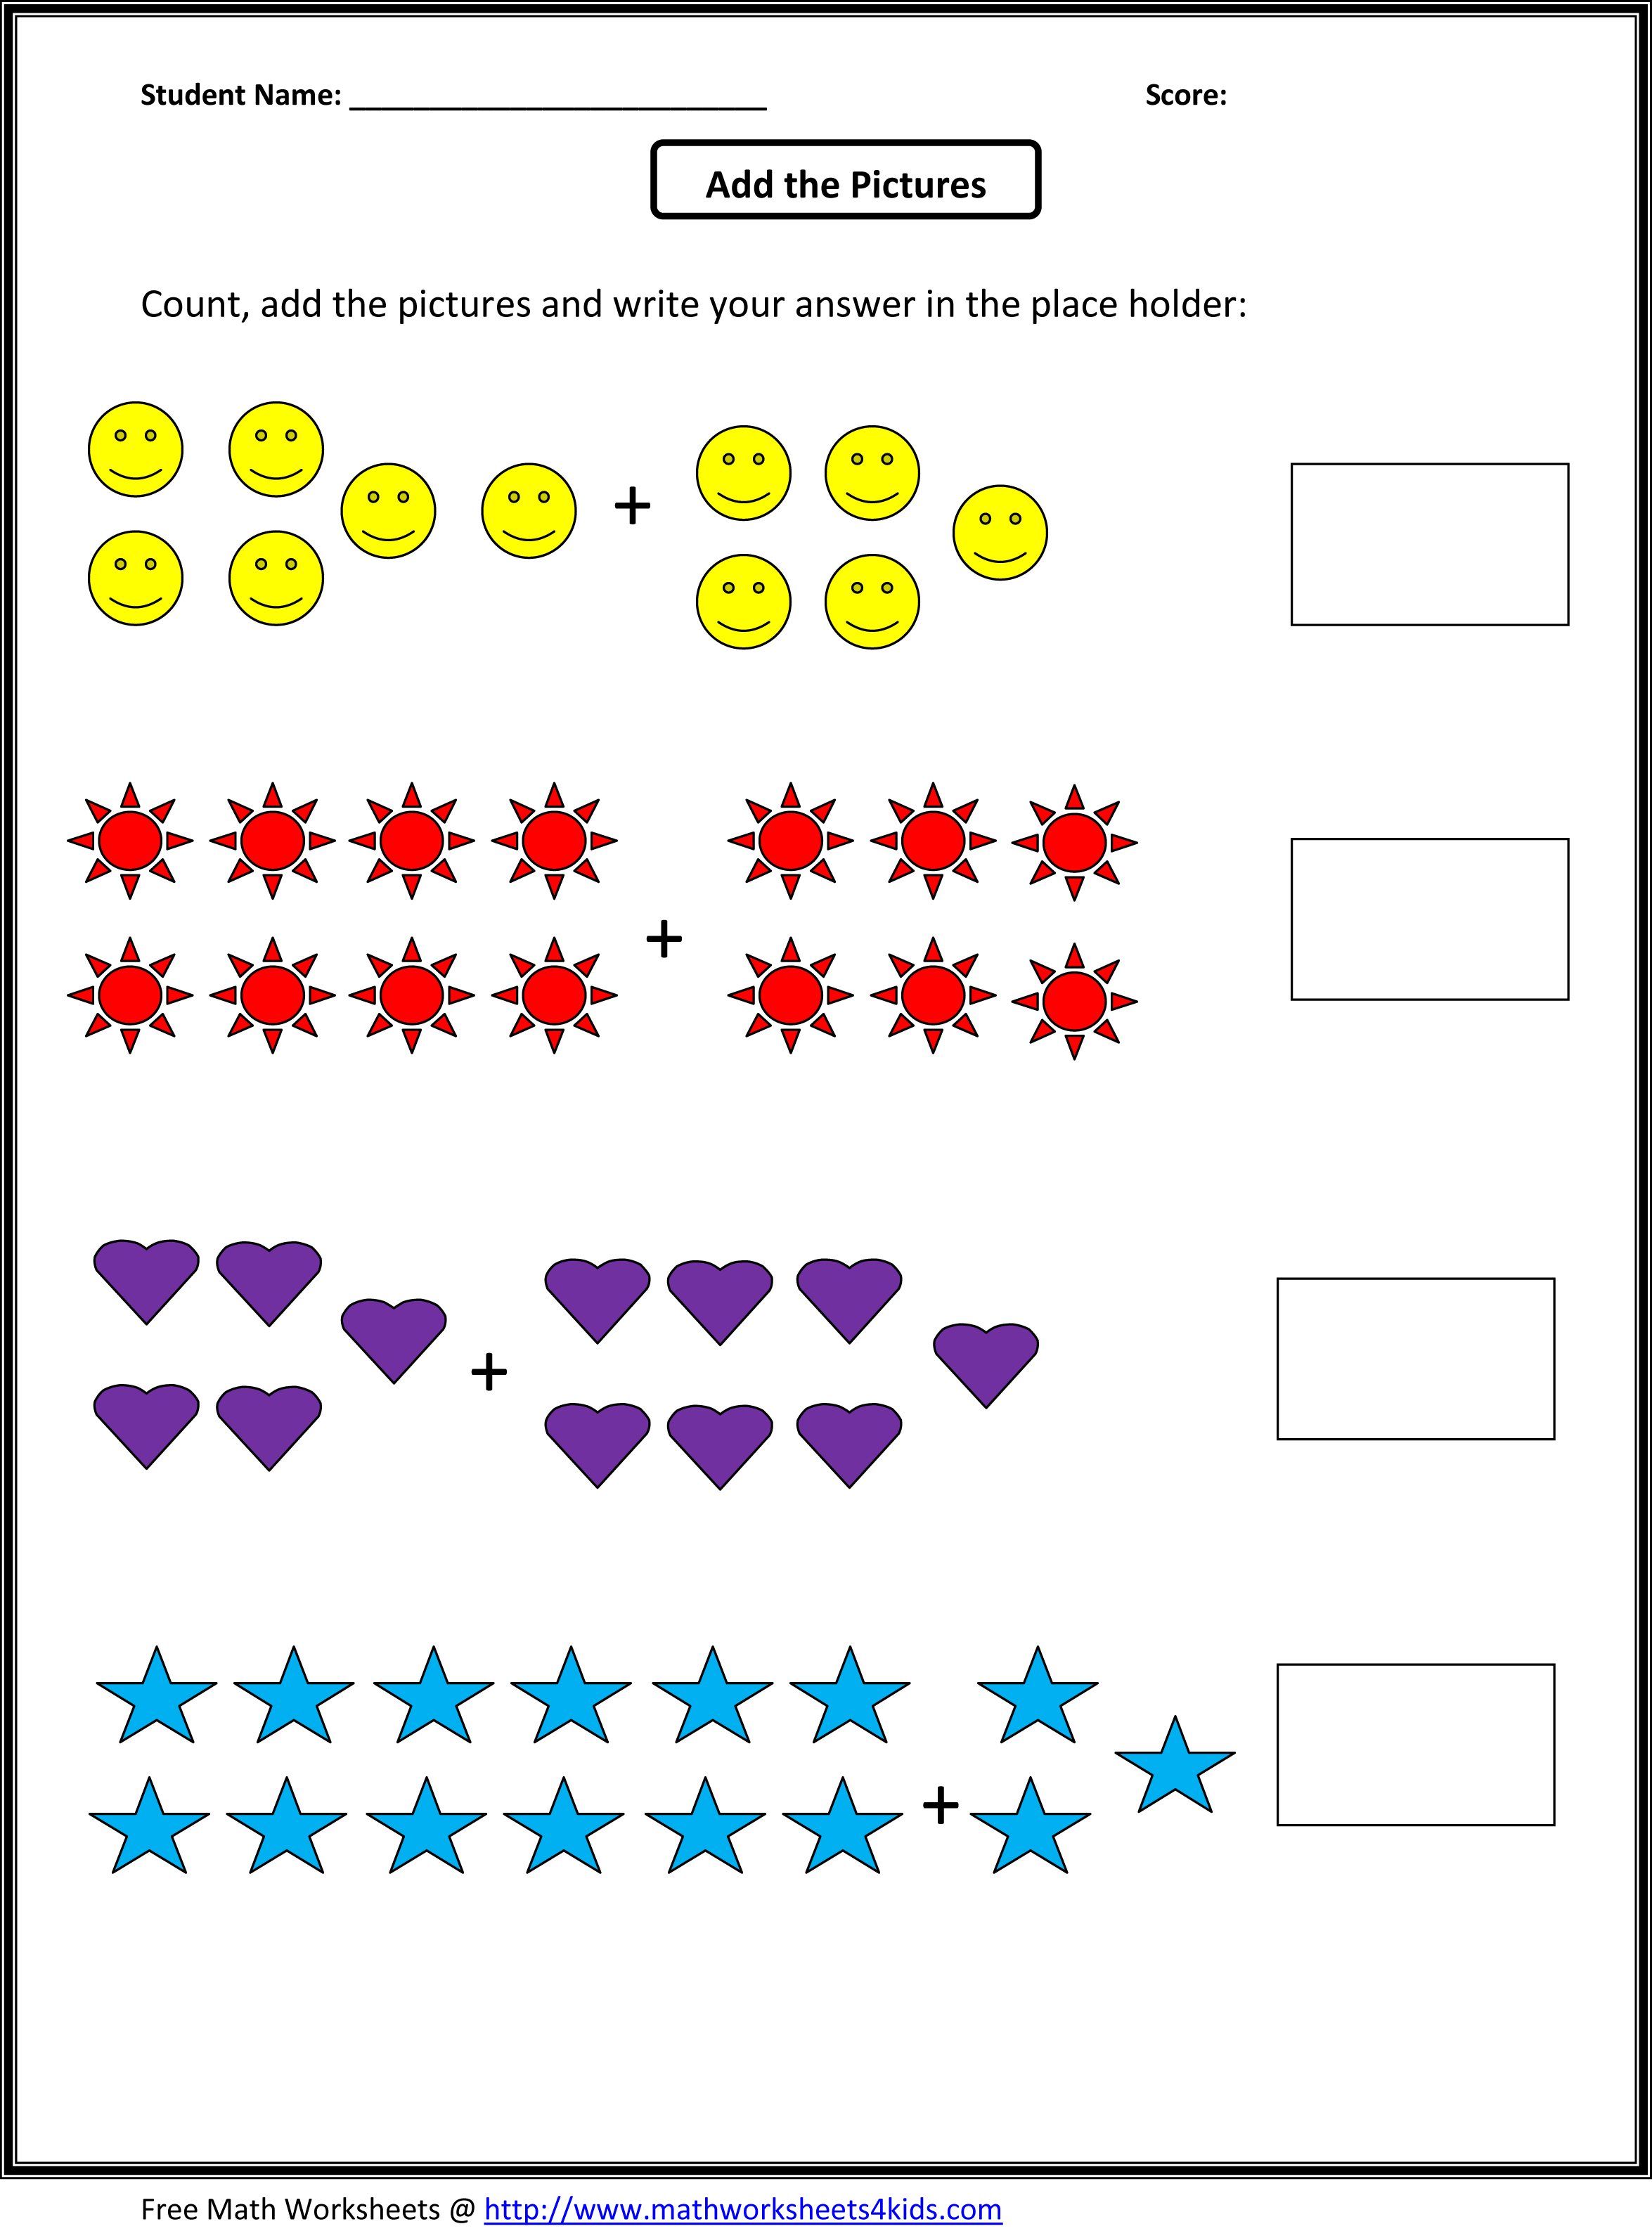 Proatmealus  Unusual Grade  Maths Worksheet  Reocurent With Remarkable Math Worksheets For St Grade Free  Reocurent With Appealing Proportion Worksheet Th Grade Also Math Worksheets Rounding In Addition Place Value Worksheet Th Grade And Second Grade Sight Word Worksheets As Well As Easy Balancing Chemical Equations Worksheet Additionally Social Studies Printable Worksheets From Reocurentcom With Proatmealus  Remarkable Grade  Maths Worksheet  Reocurent With Appealing Math Worksheets For St Grade Free  Reocurent And Unusual Proportion Worksheet Th Grade Also Math Worksheets Rounding In Addition Place Value Worksheet Th Grade From Reocurentcom